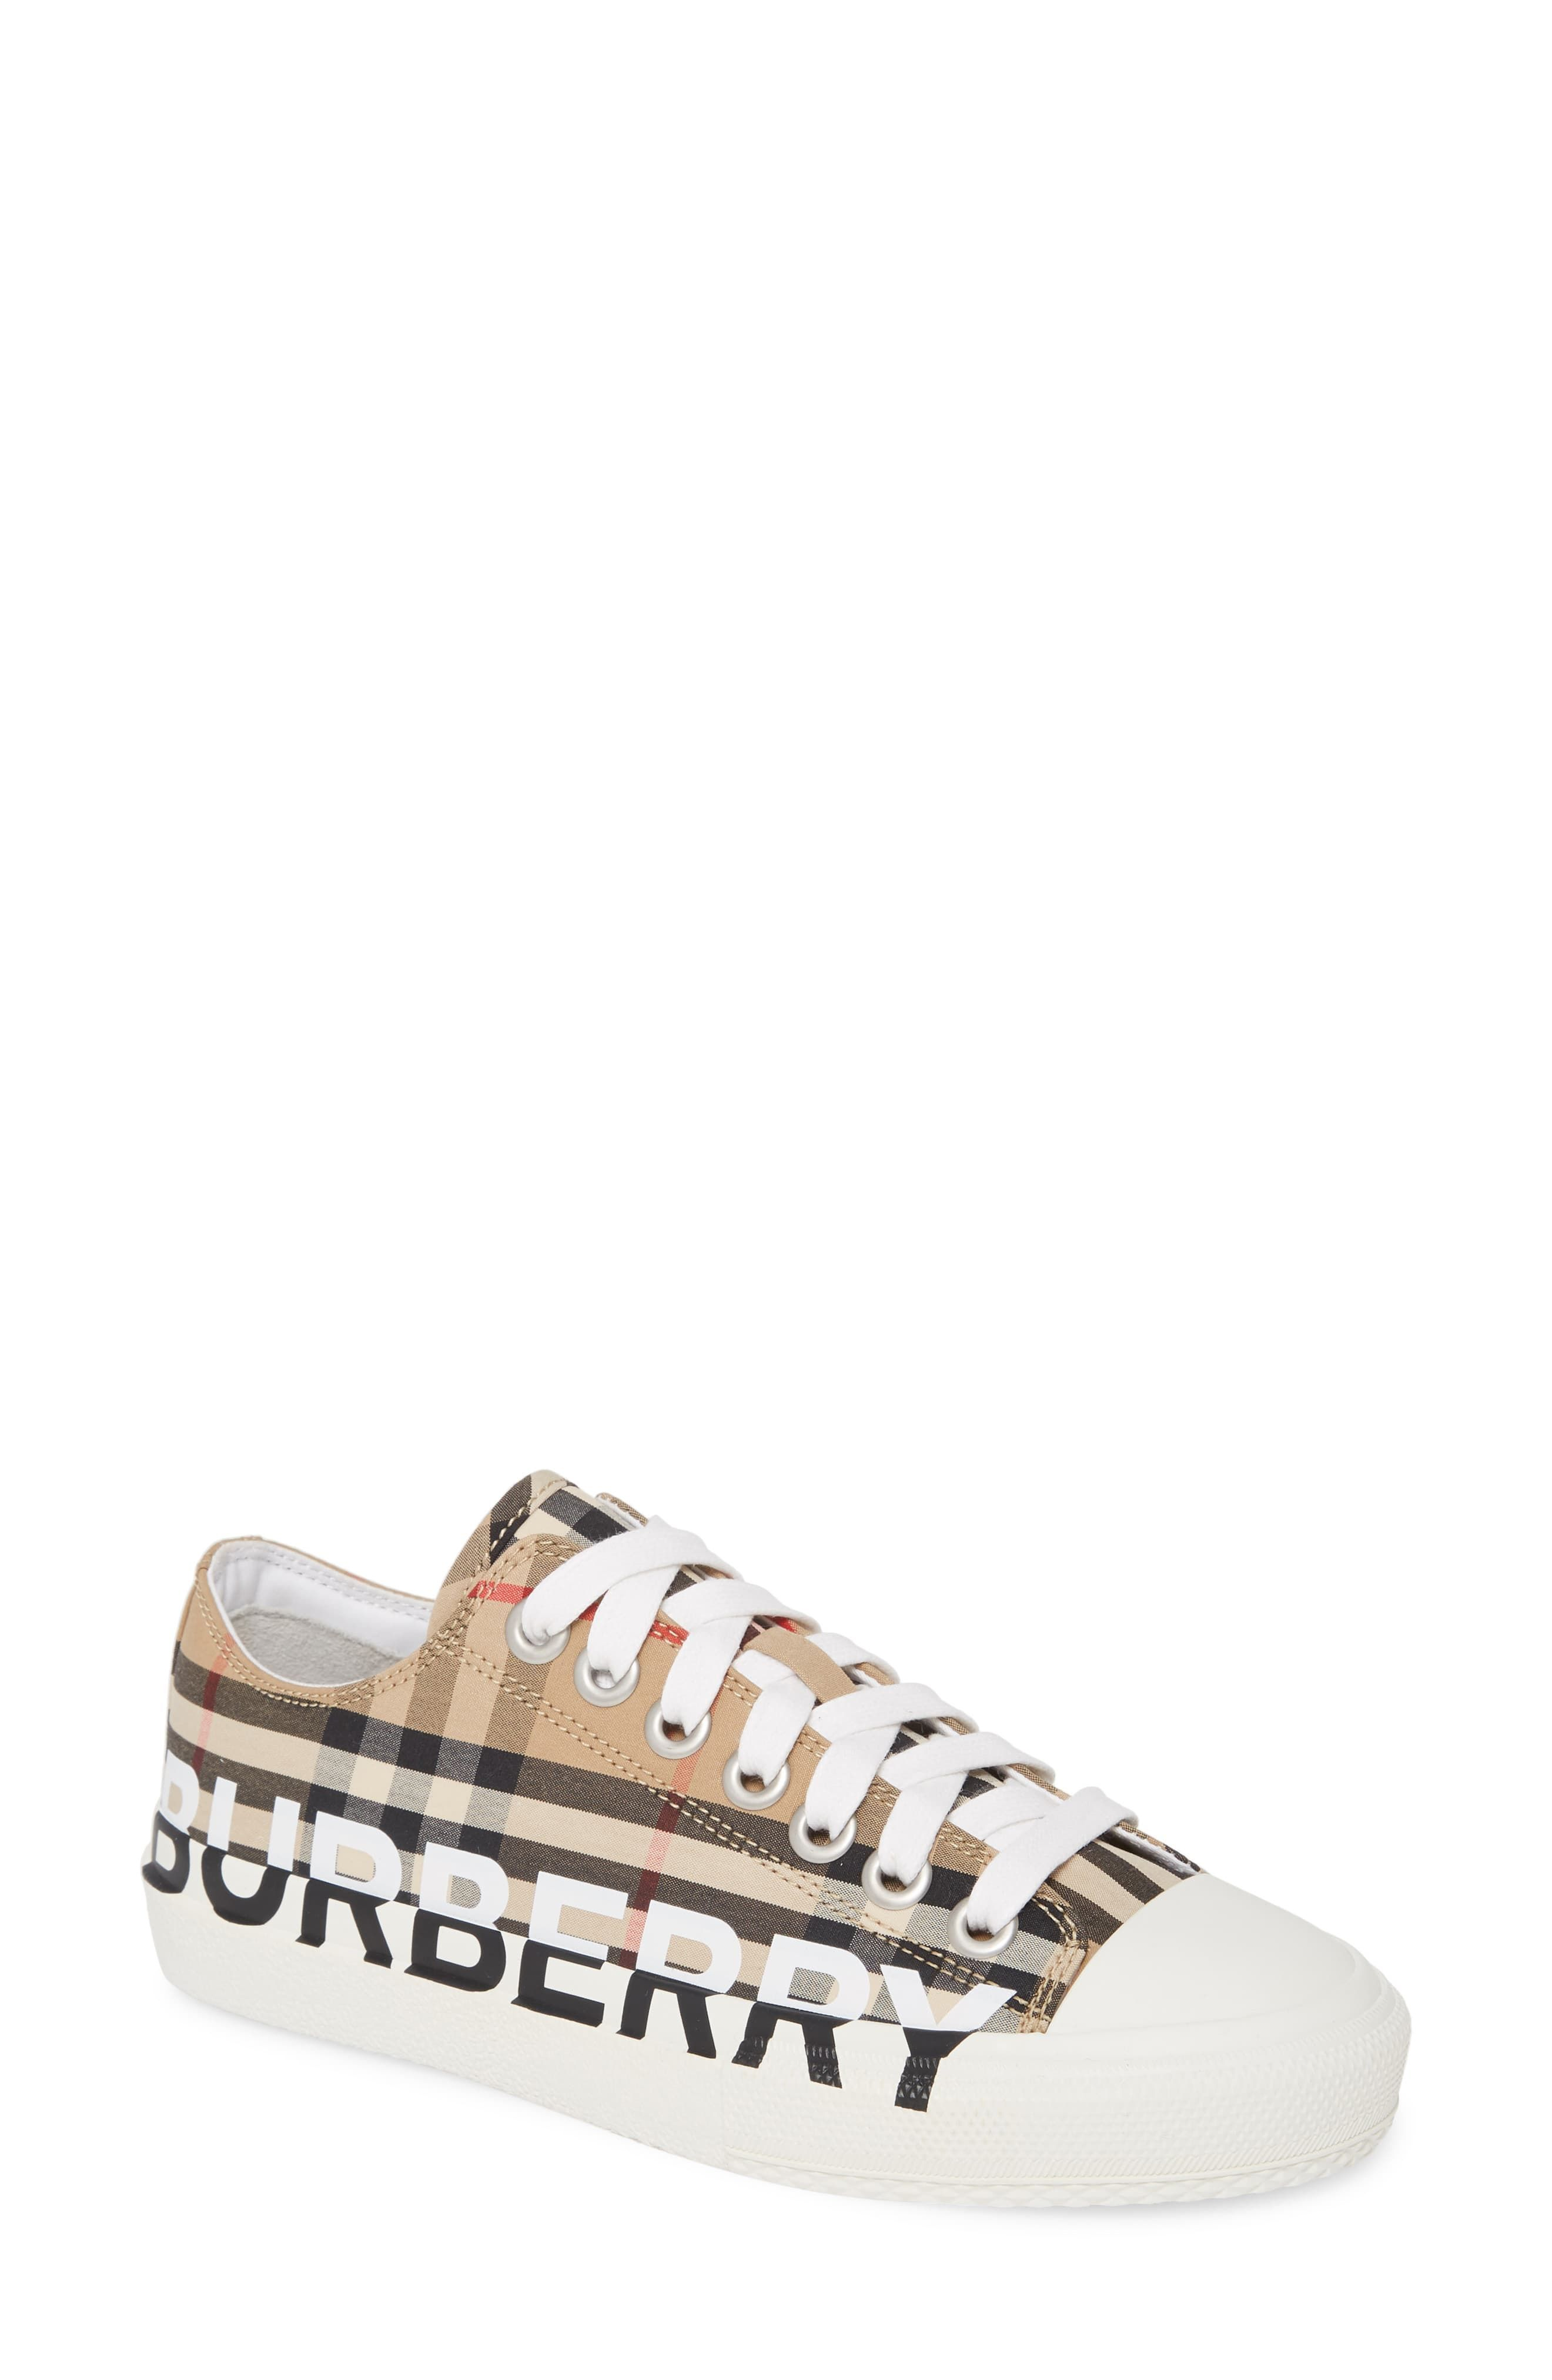 burberry sneakers womens